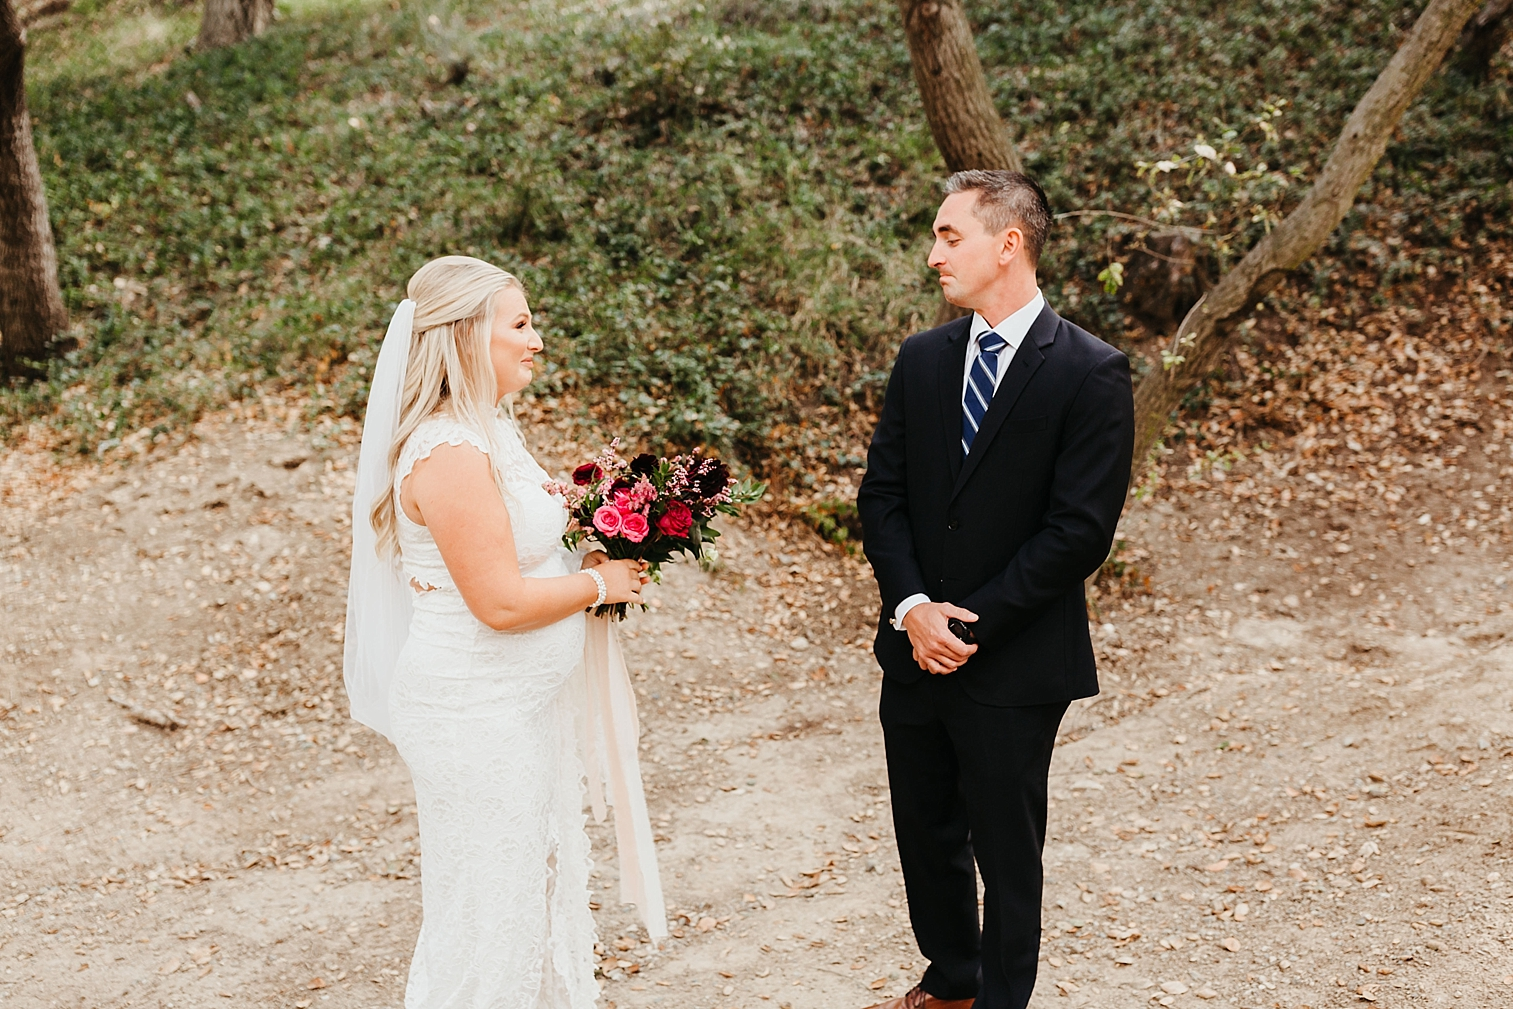 Rancho-Las-Lomas-Wedding-42.jpg